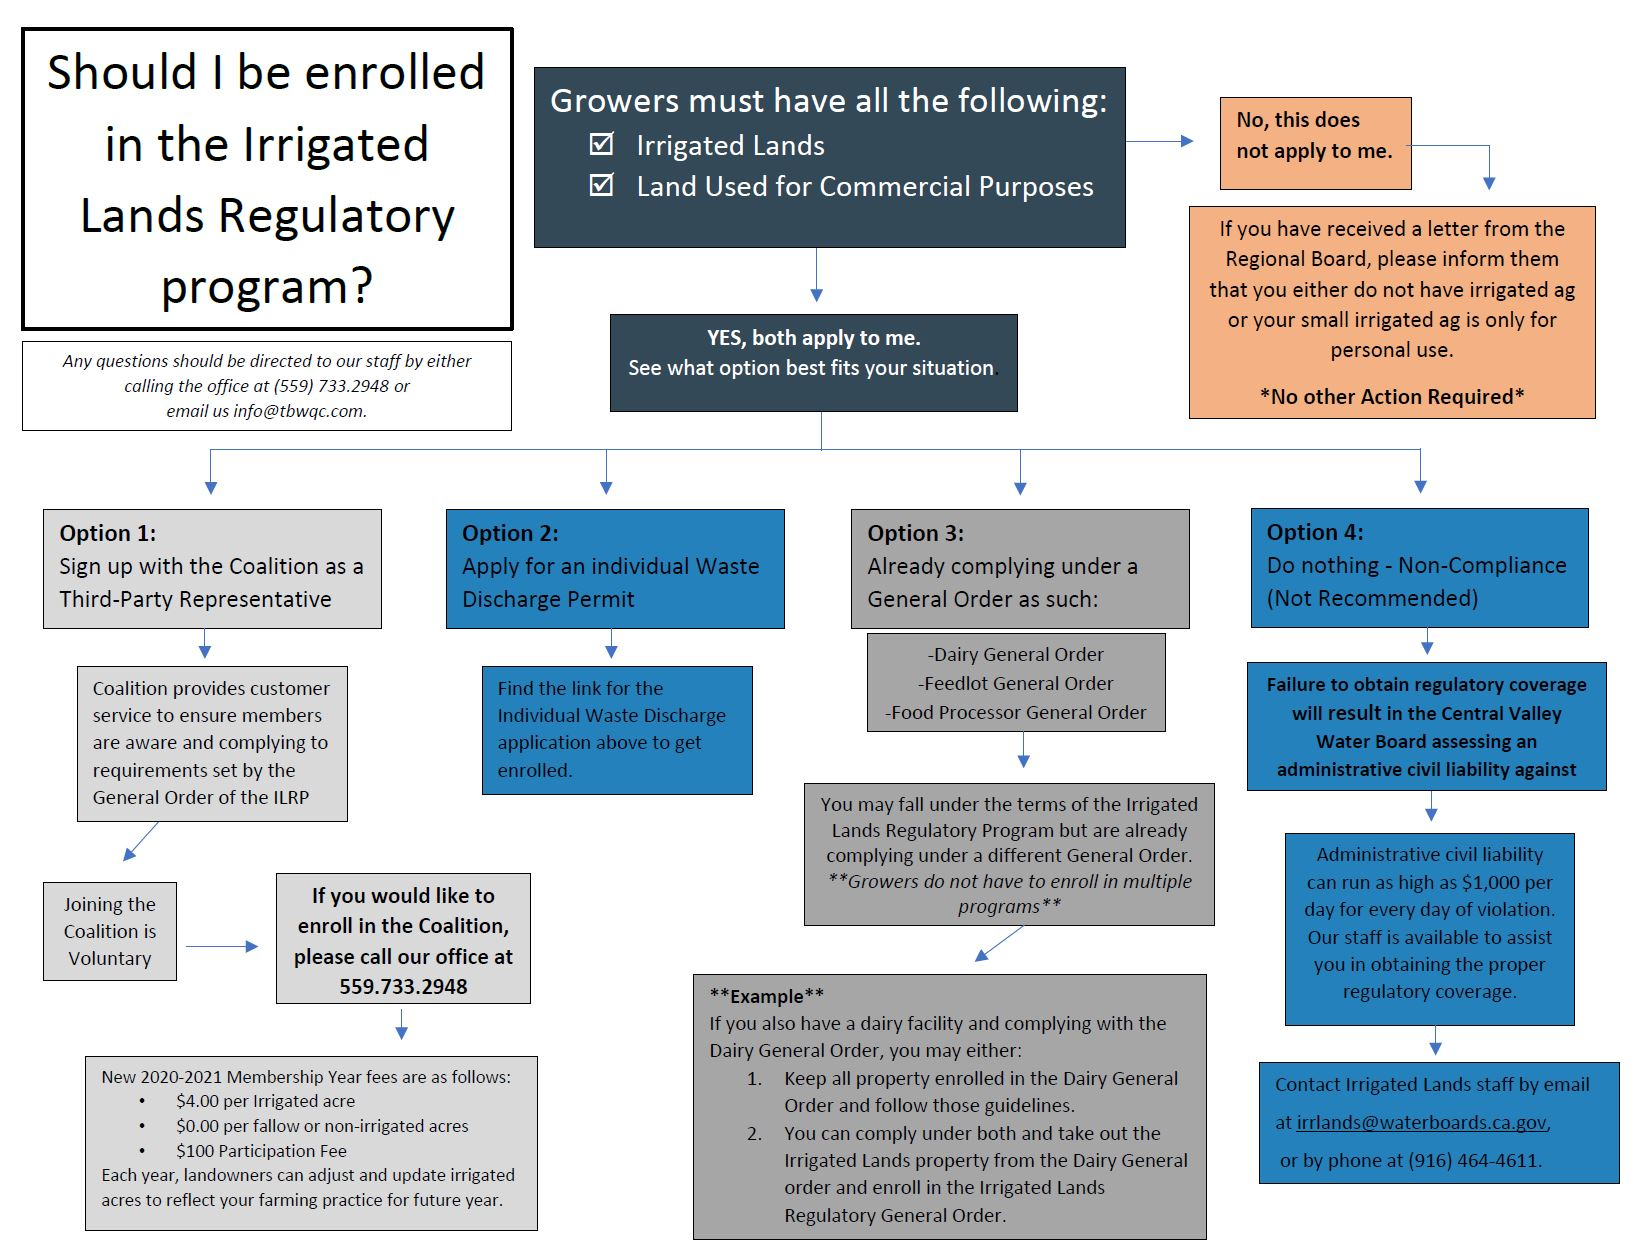 should-i-be-enrolled-in-the-irrigated-lands-regulatory-program_chart